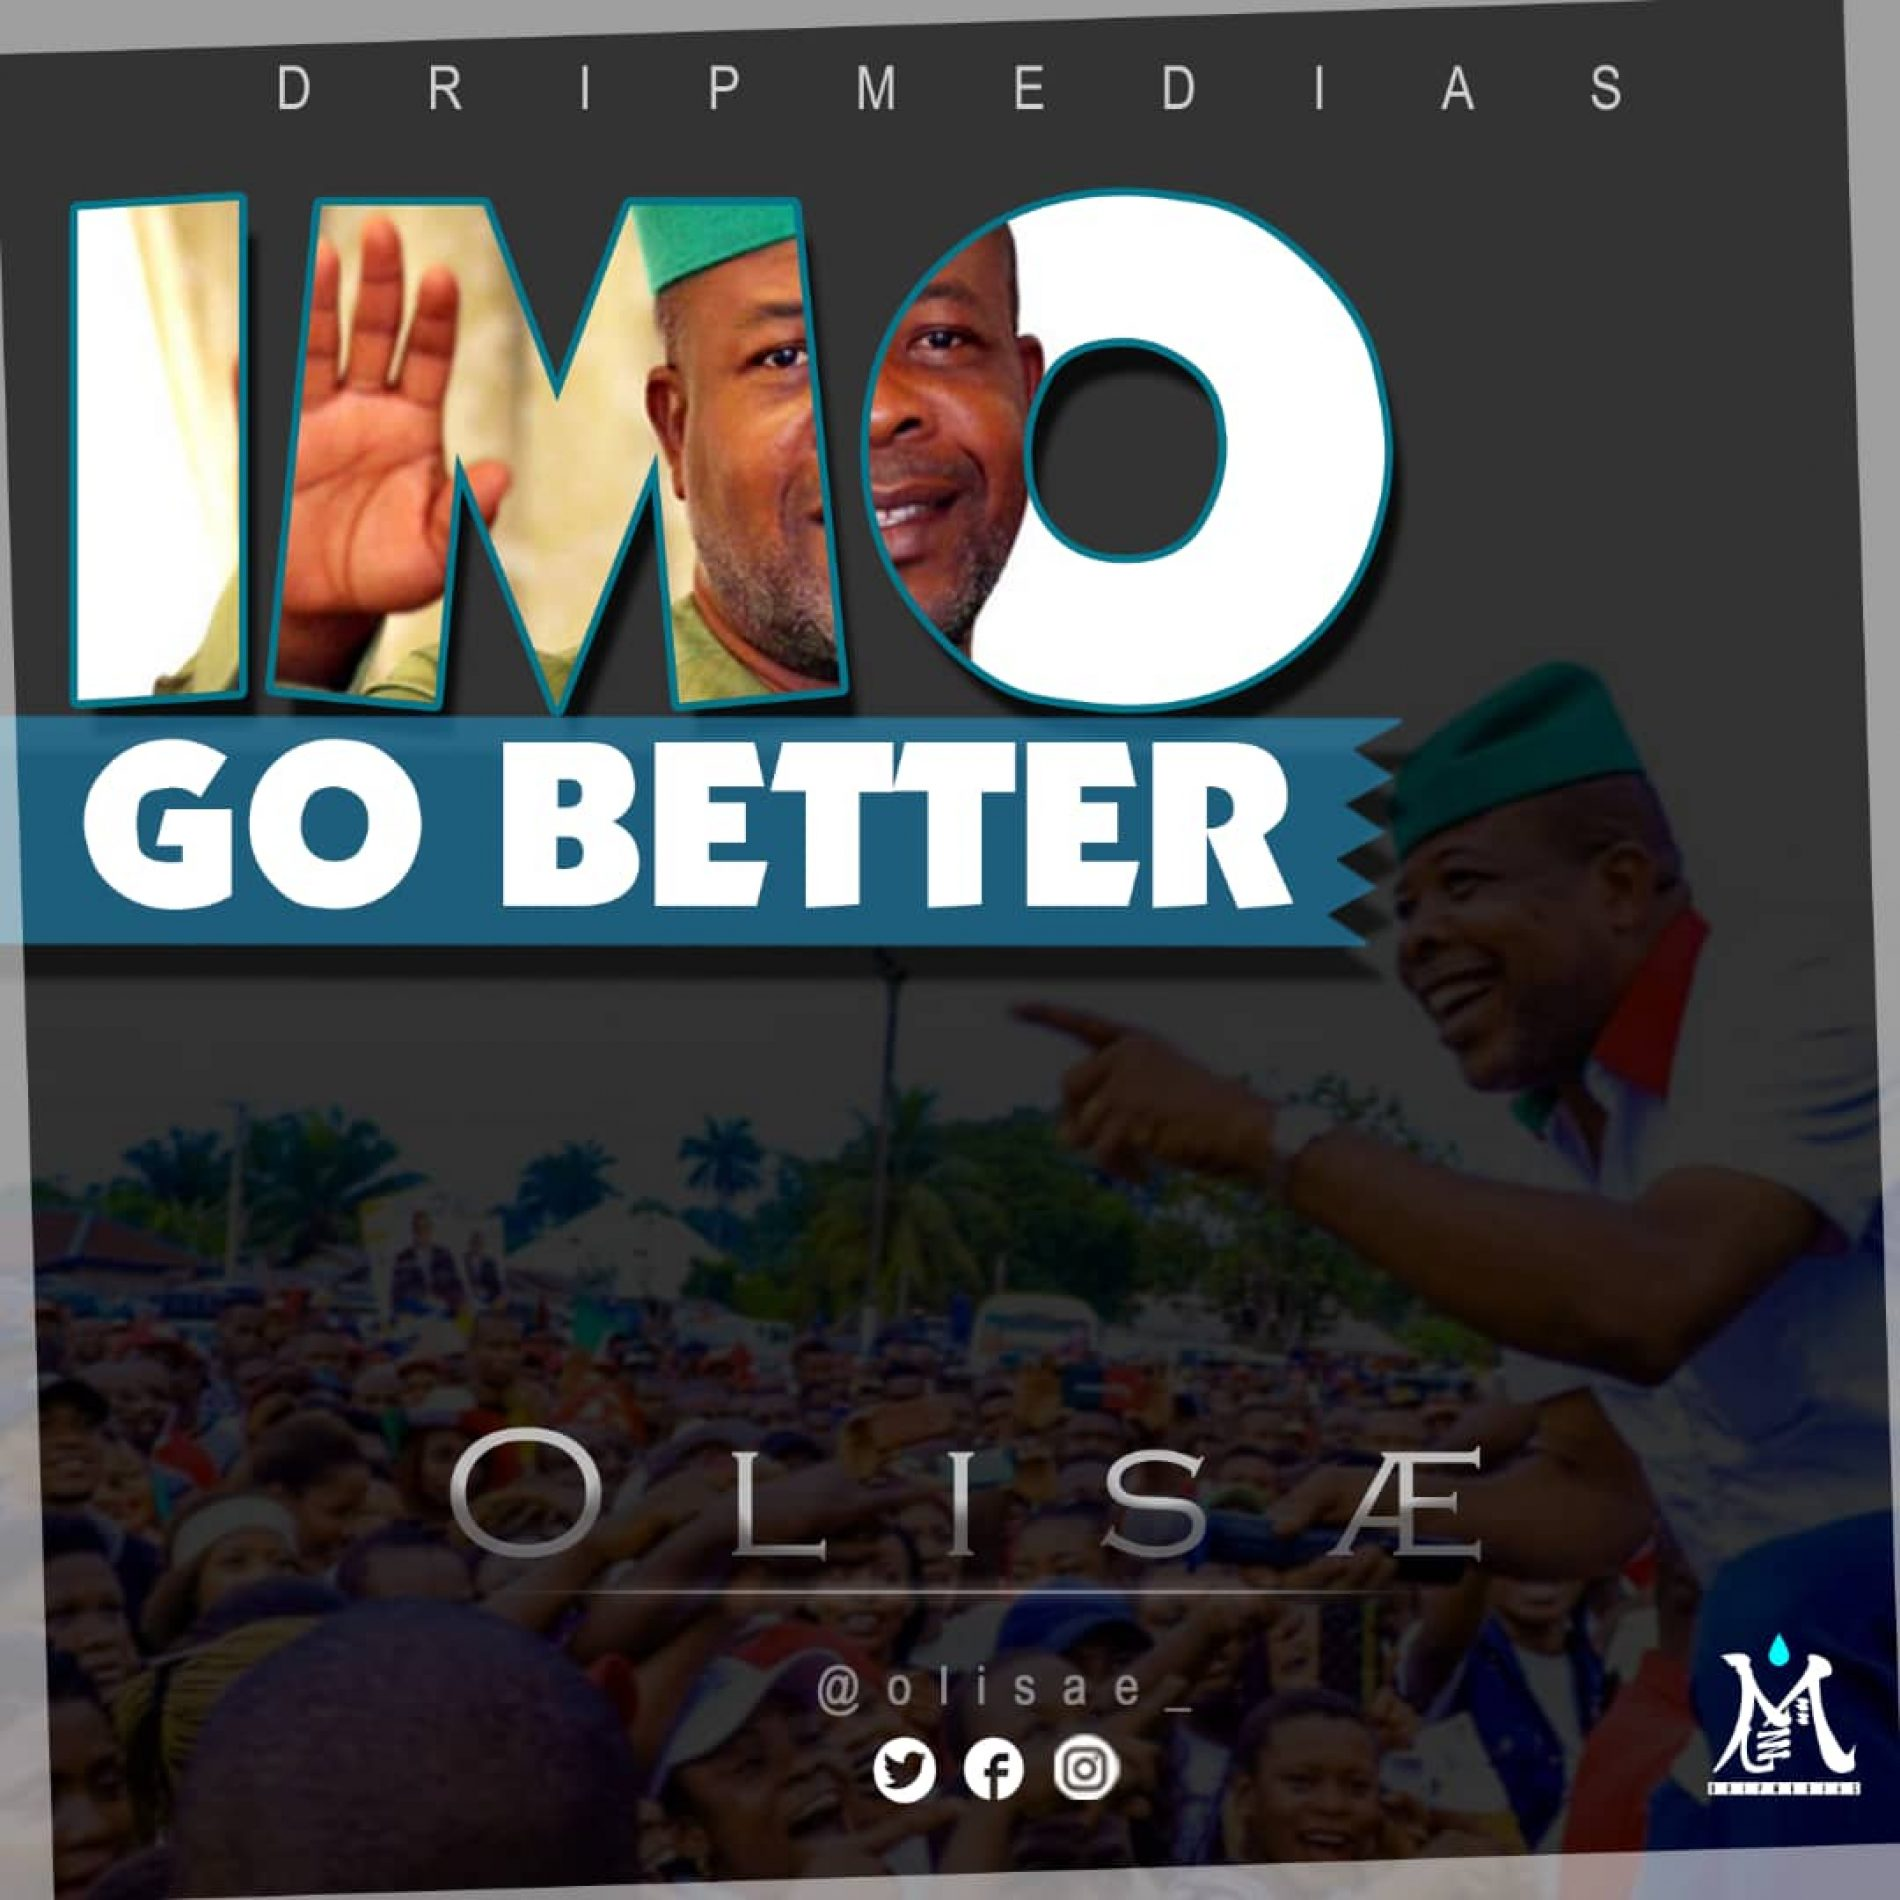 """Imo Go Better"": Olisae Dedicates New Song to Imo Govt, Imolites (Song)"